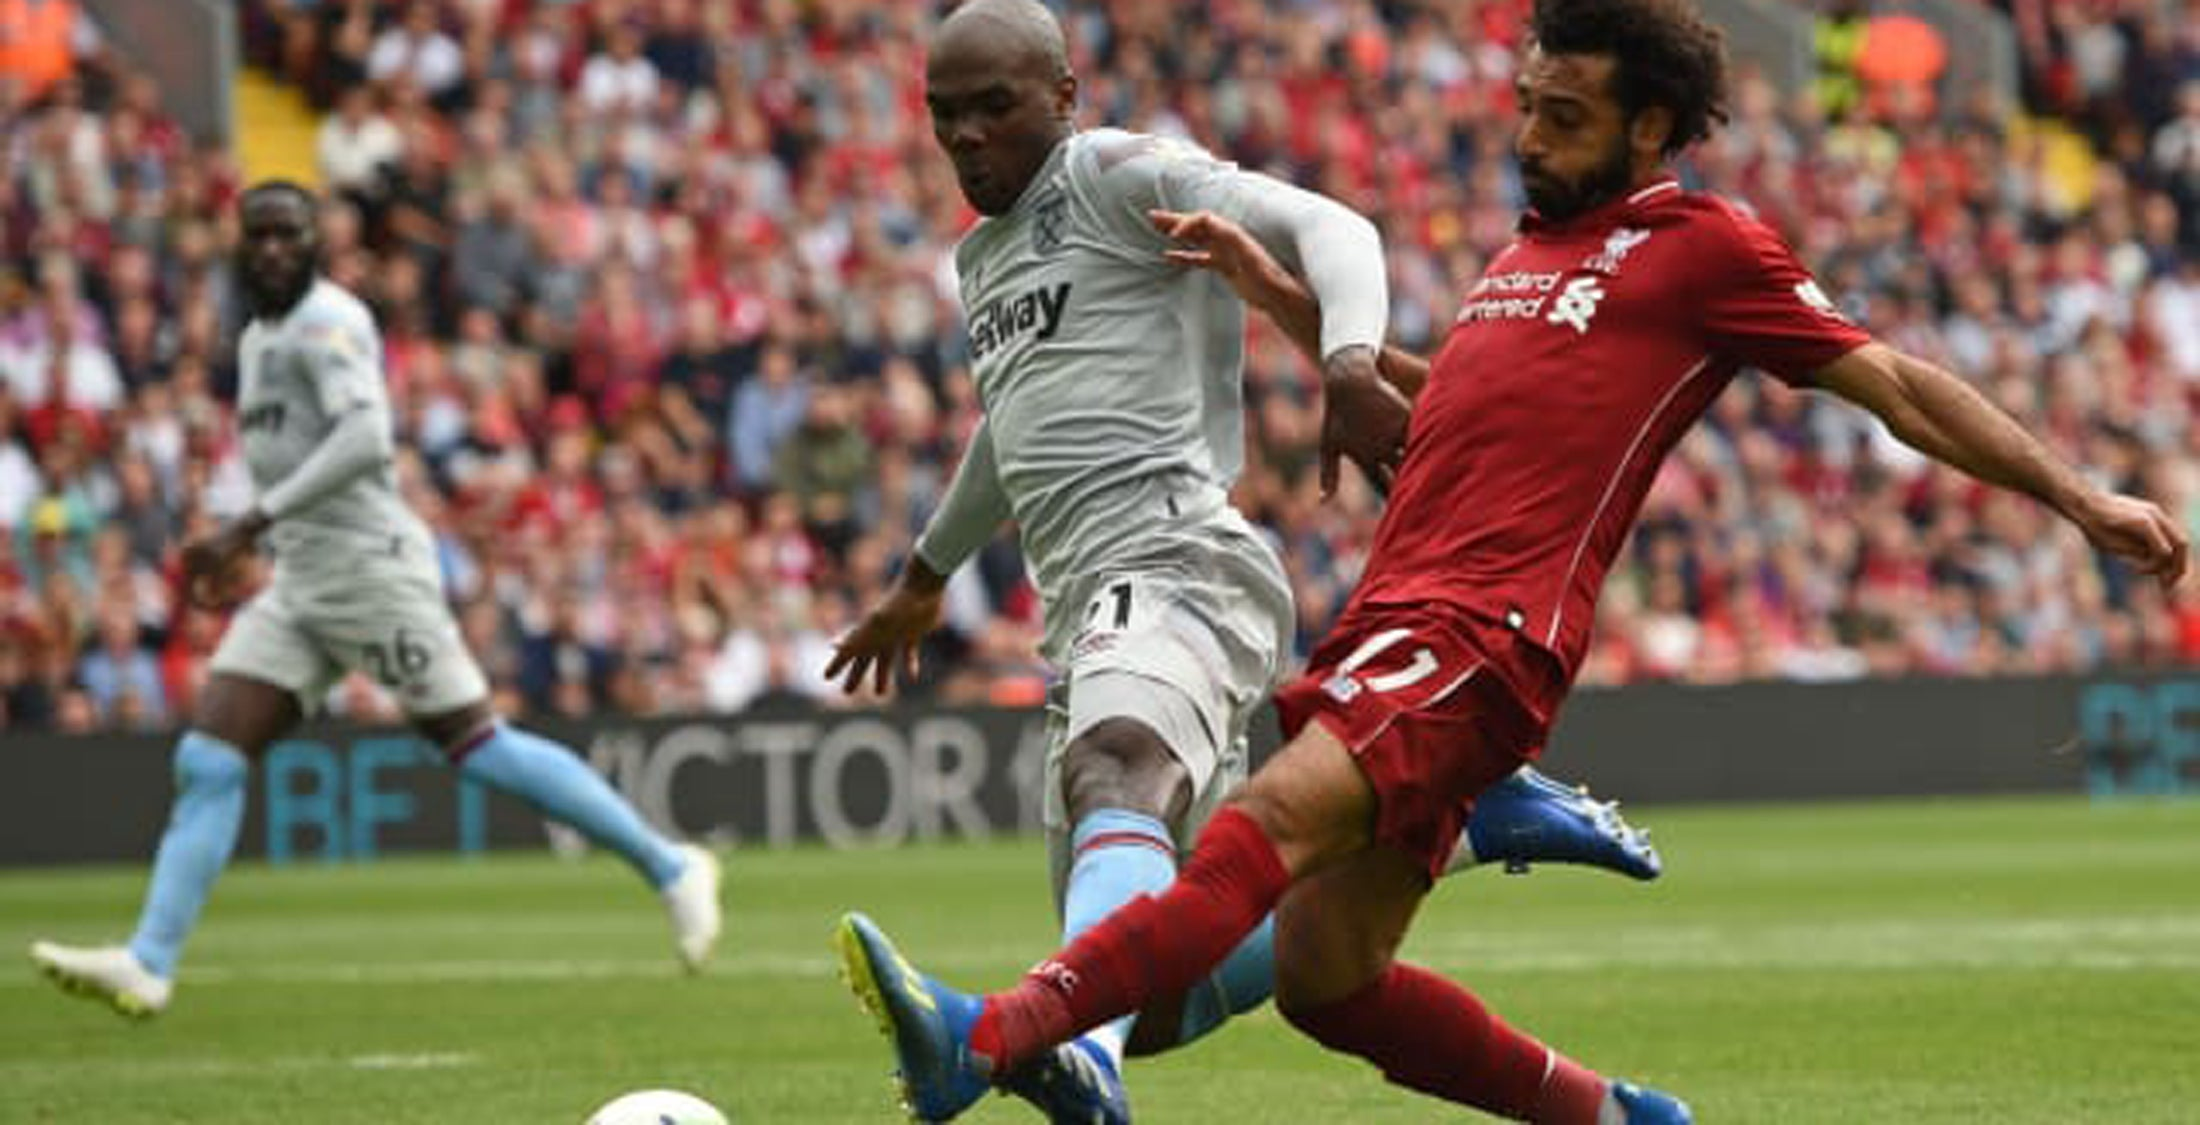 West Ham Vs Liverpool Live Stream How To Watch The